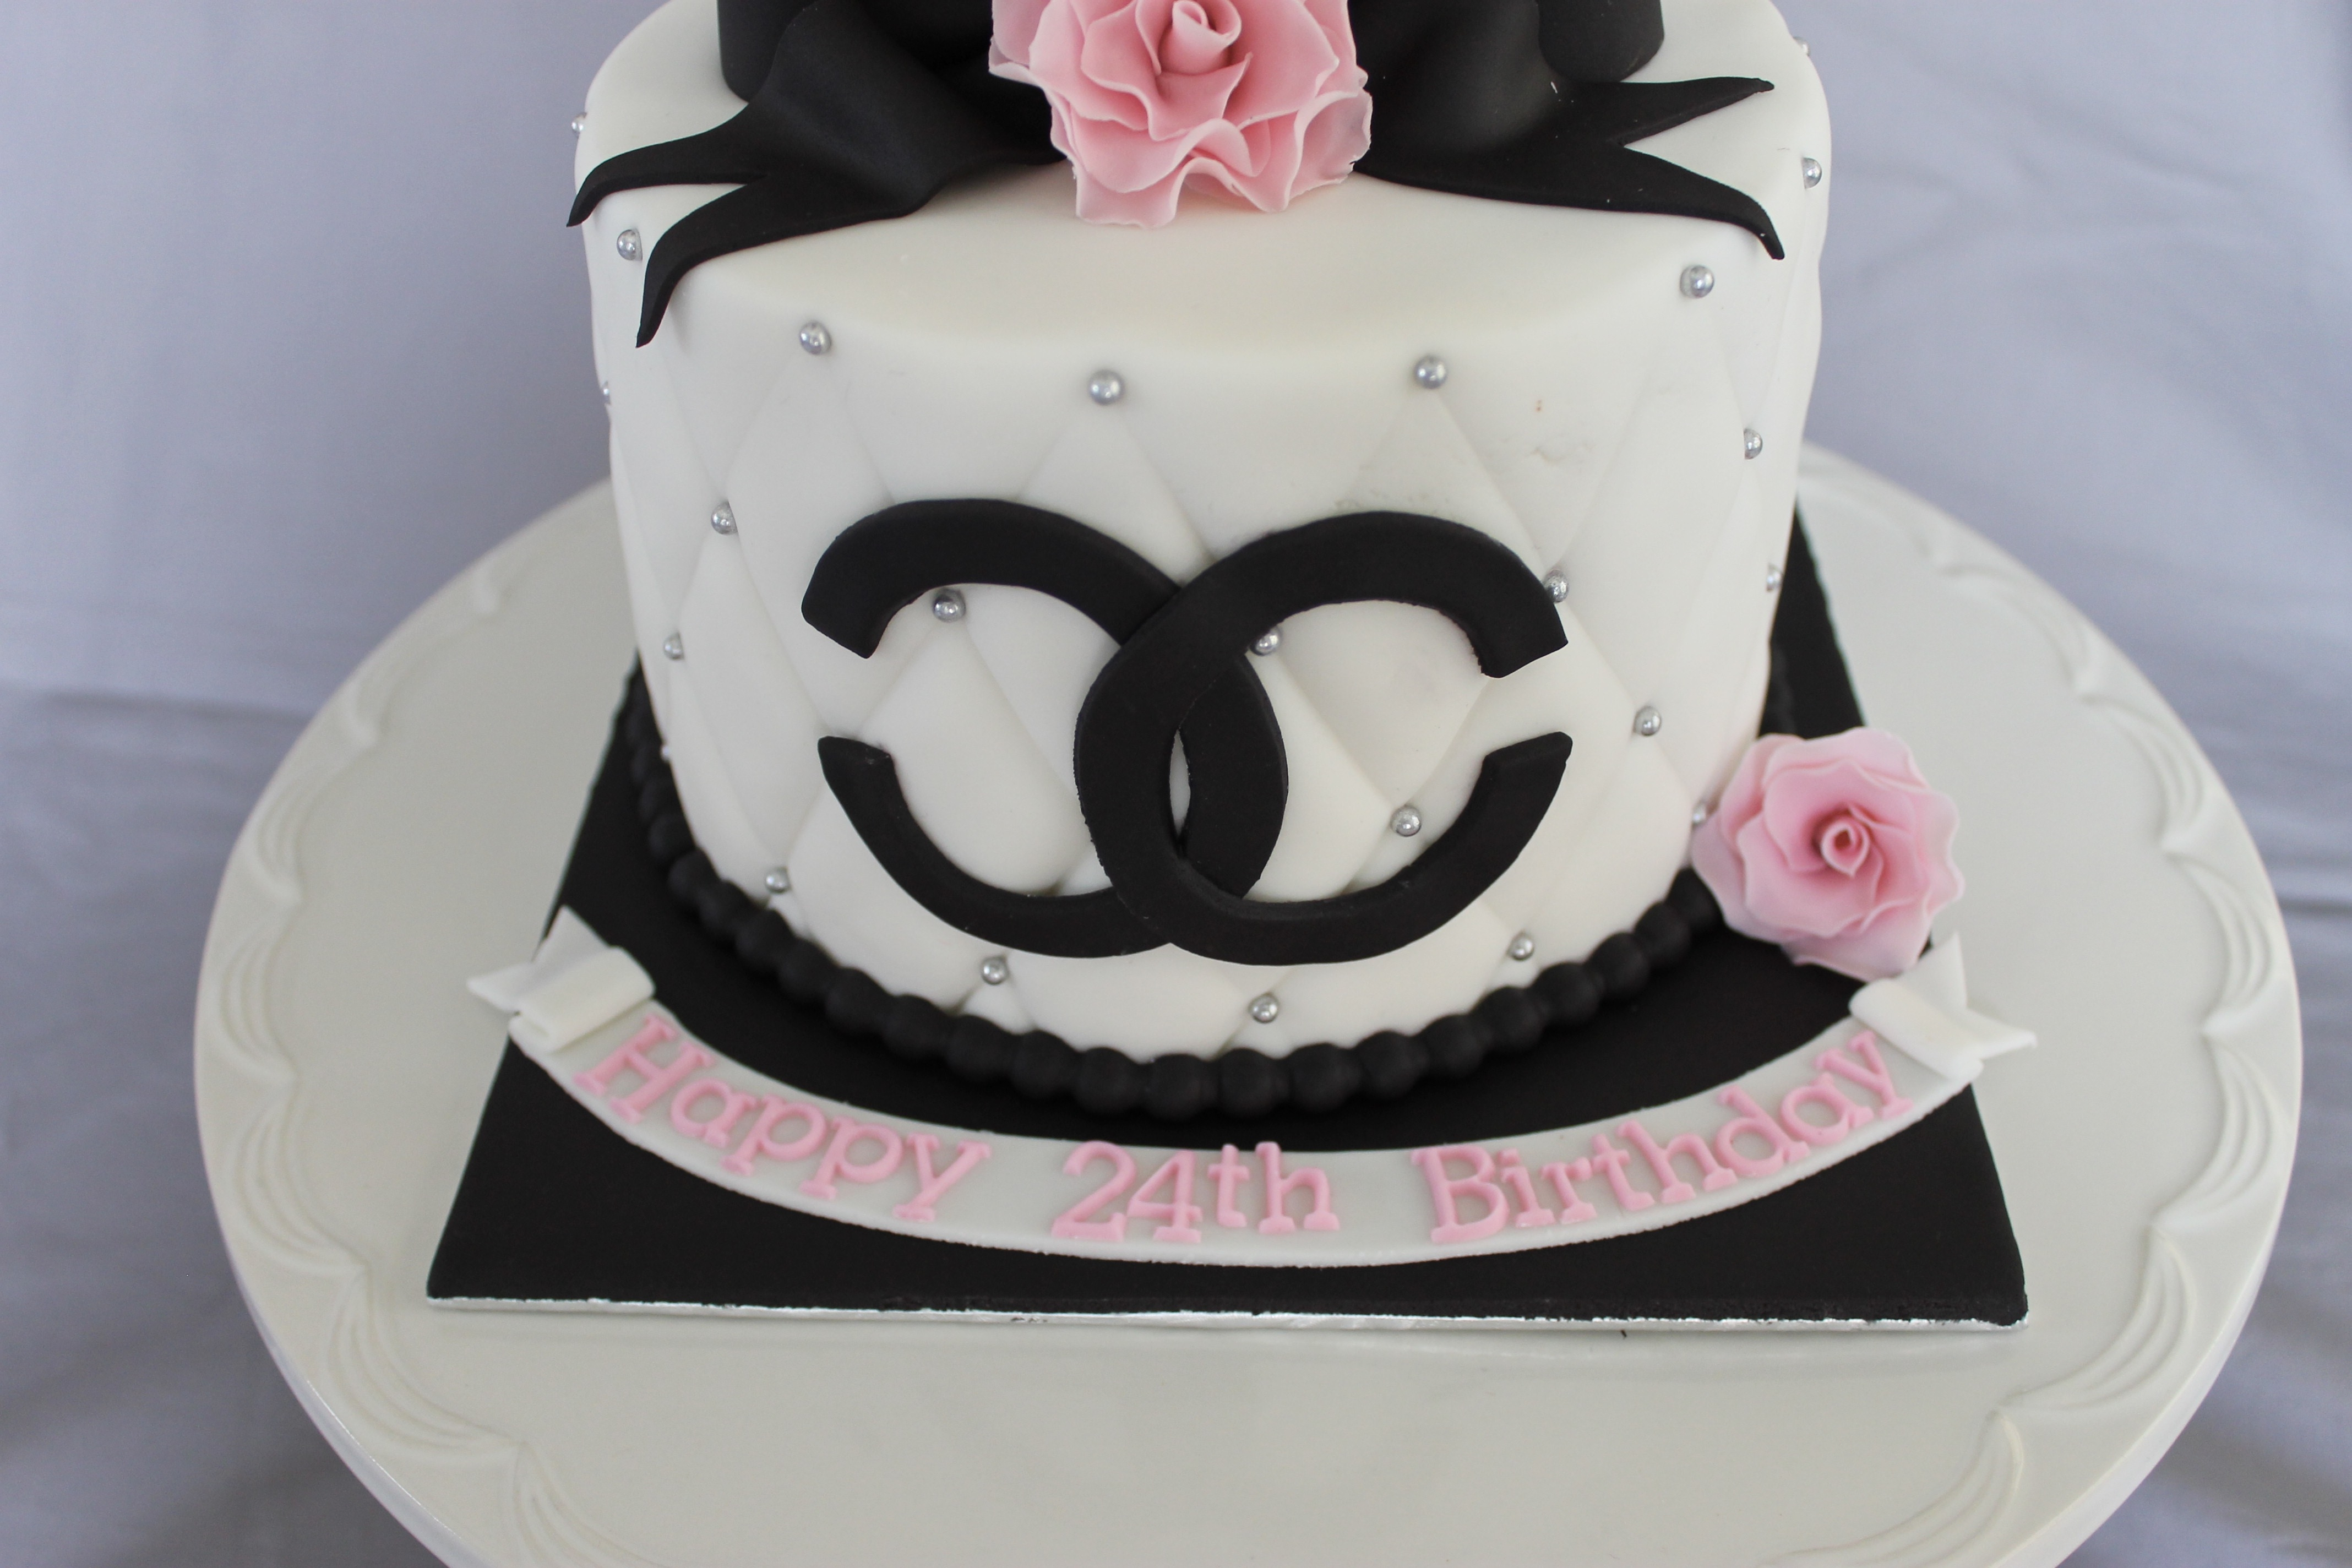 Birthday Cake Pictures Chanel : Chanel Birthday Cake - CakeCentral.com